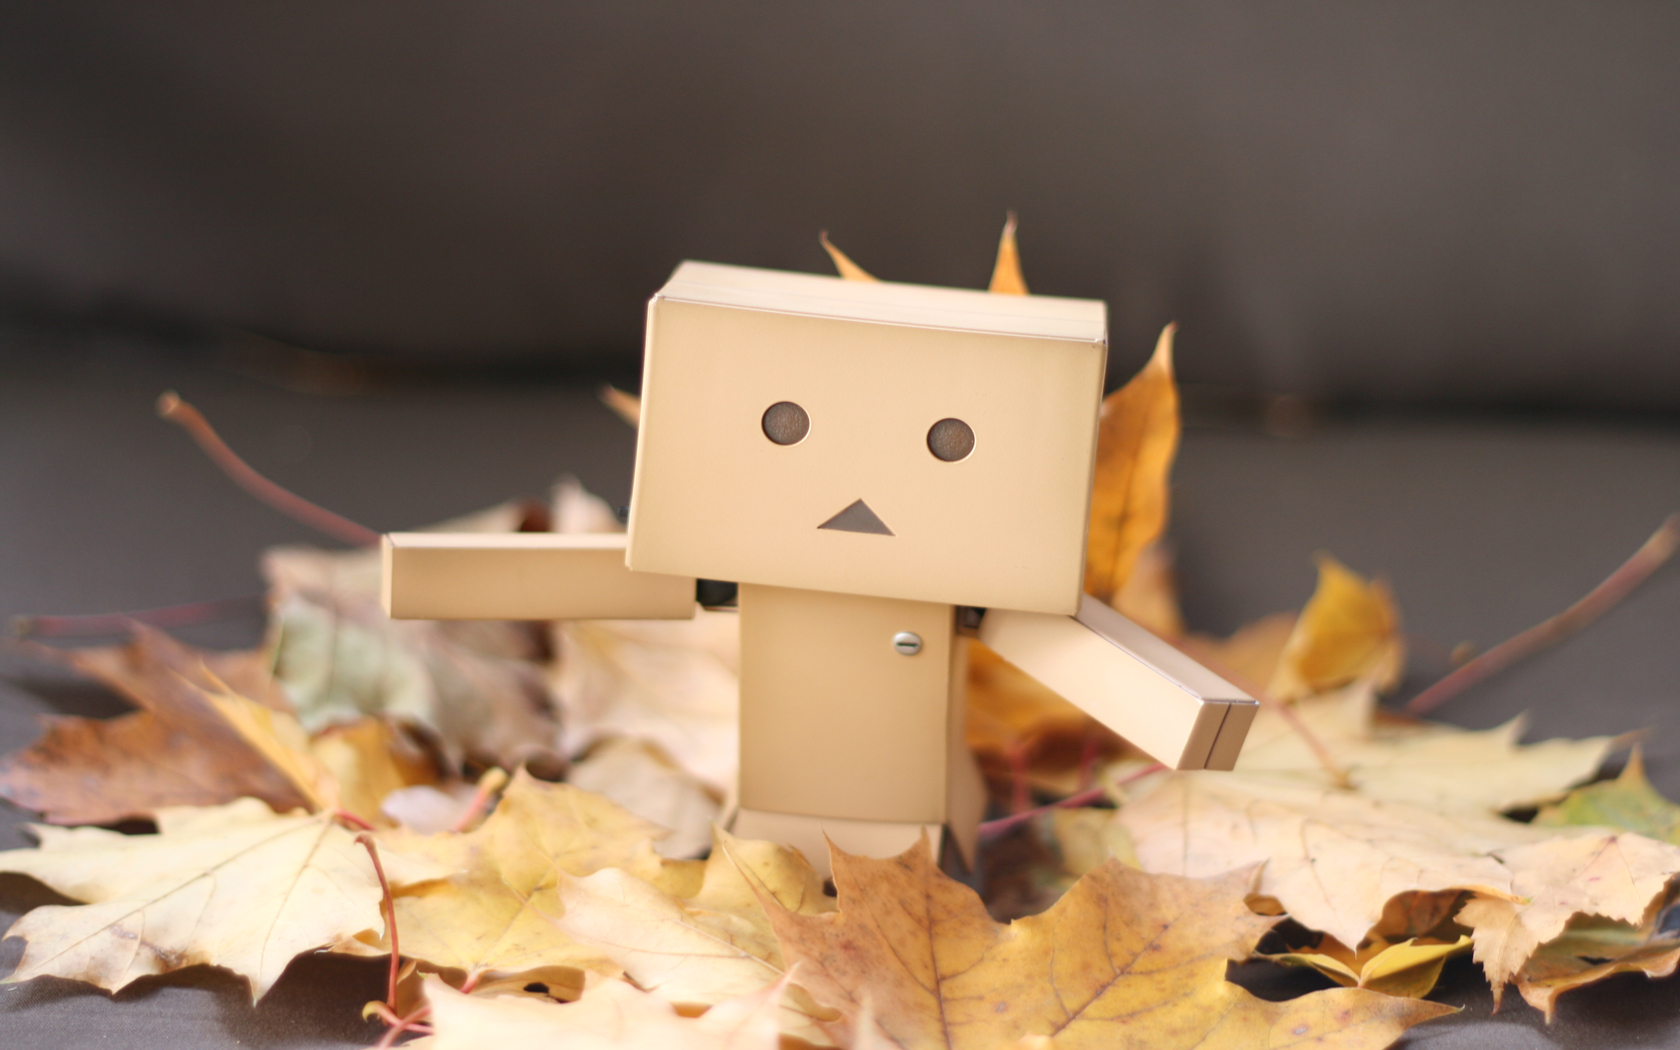 cardboard robot wallpaper hd - photo #20